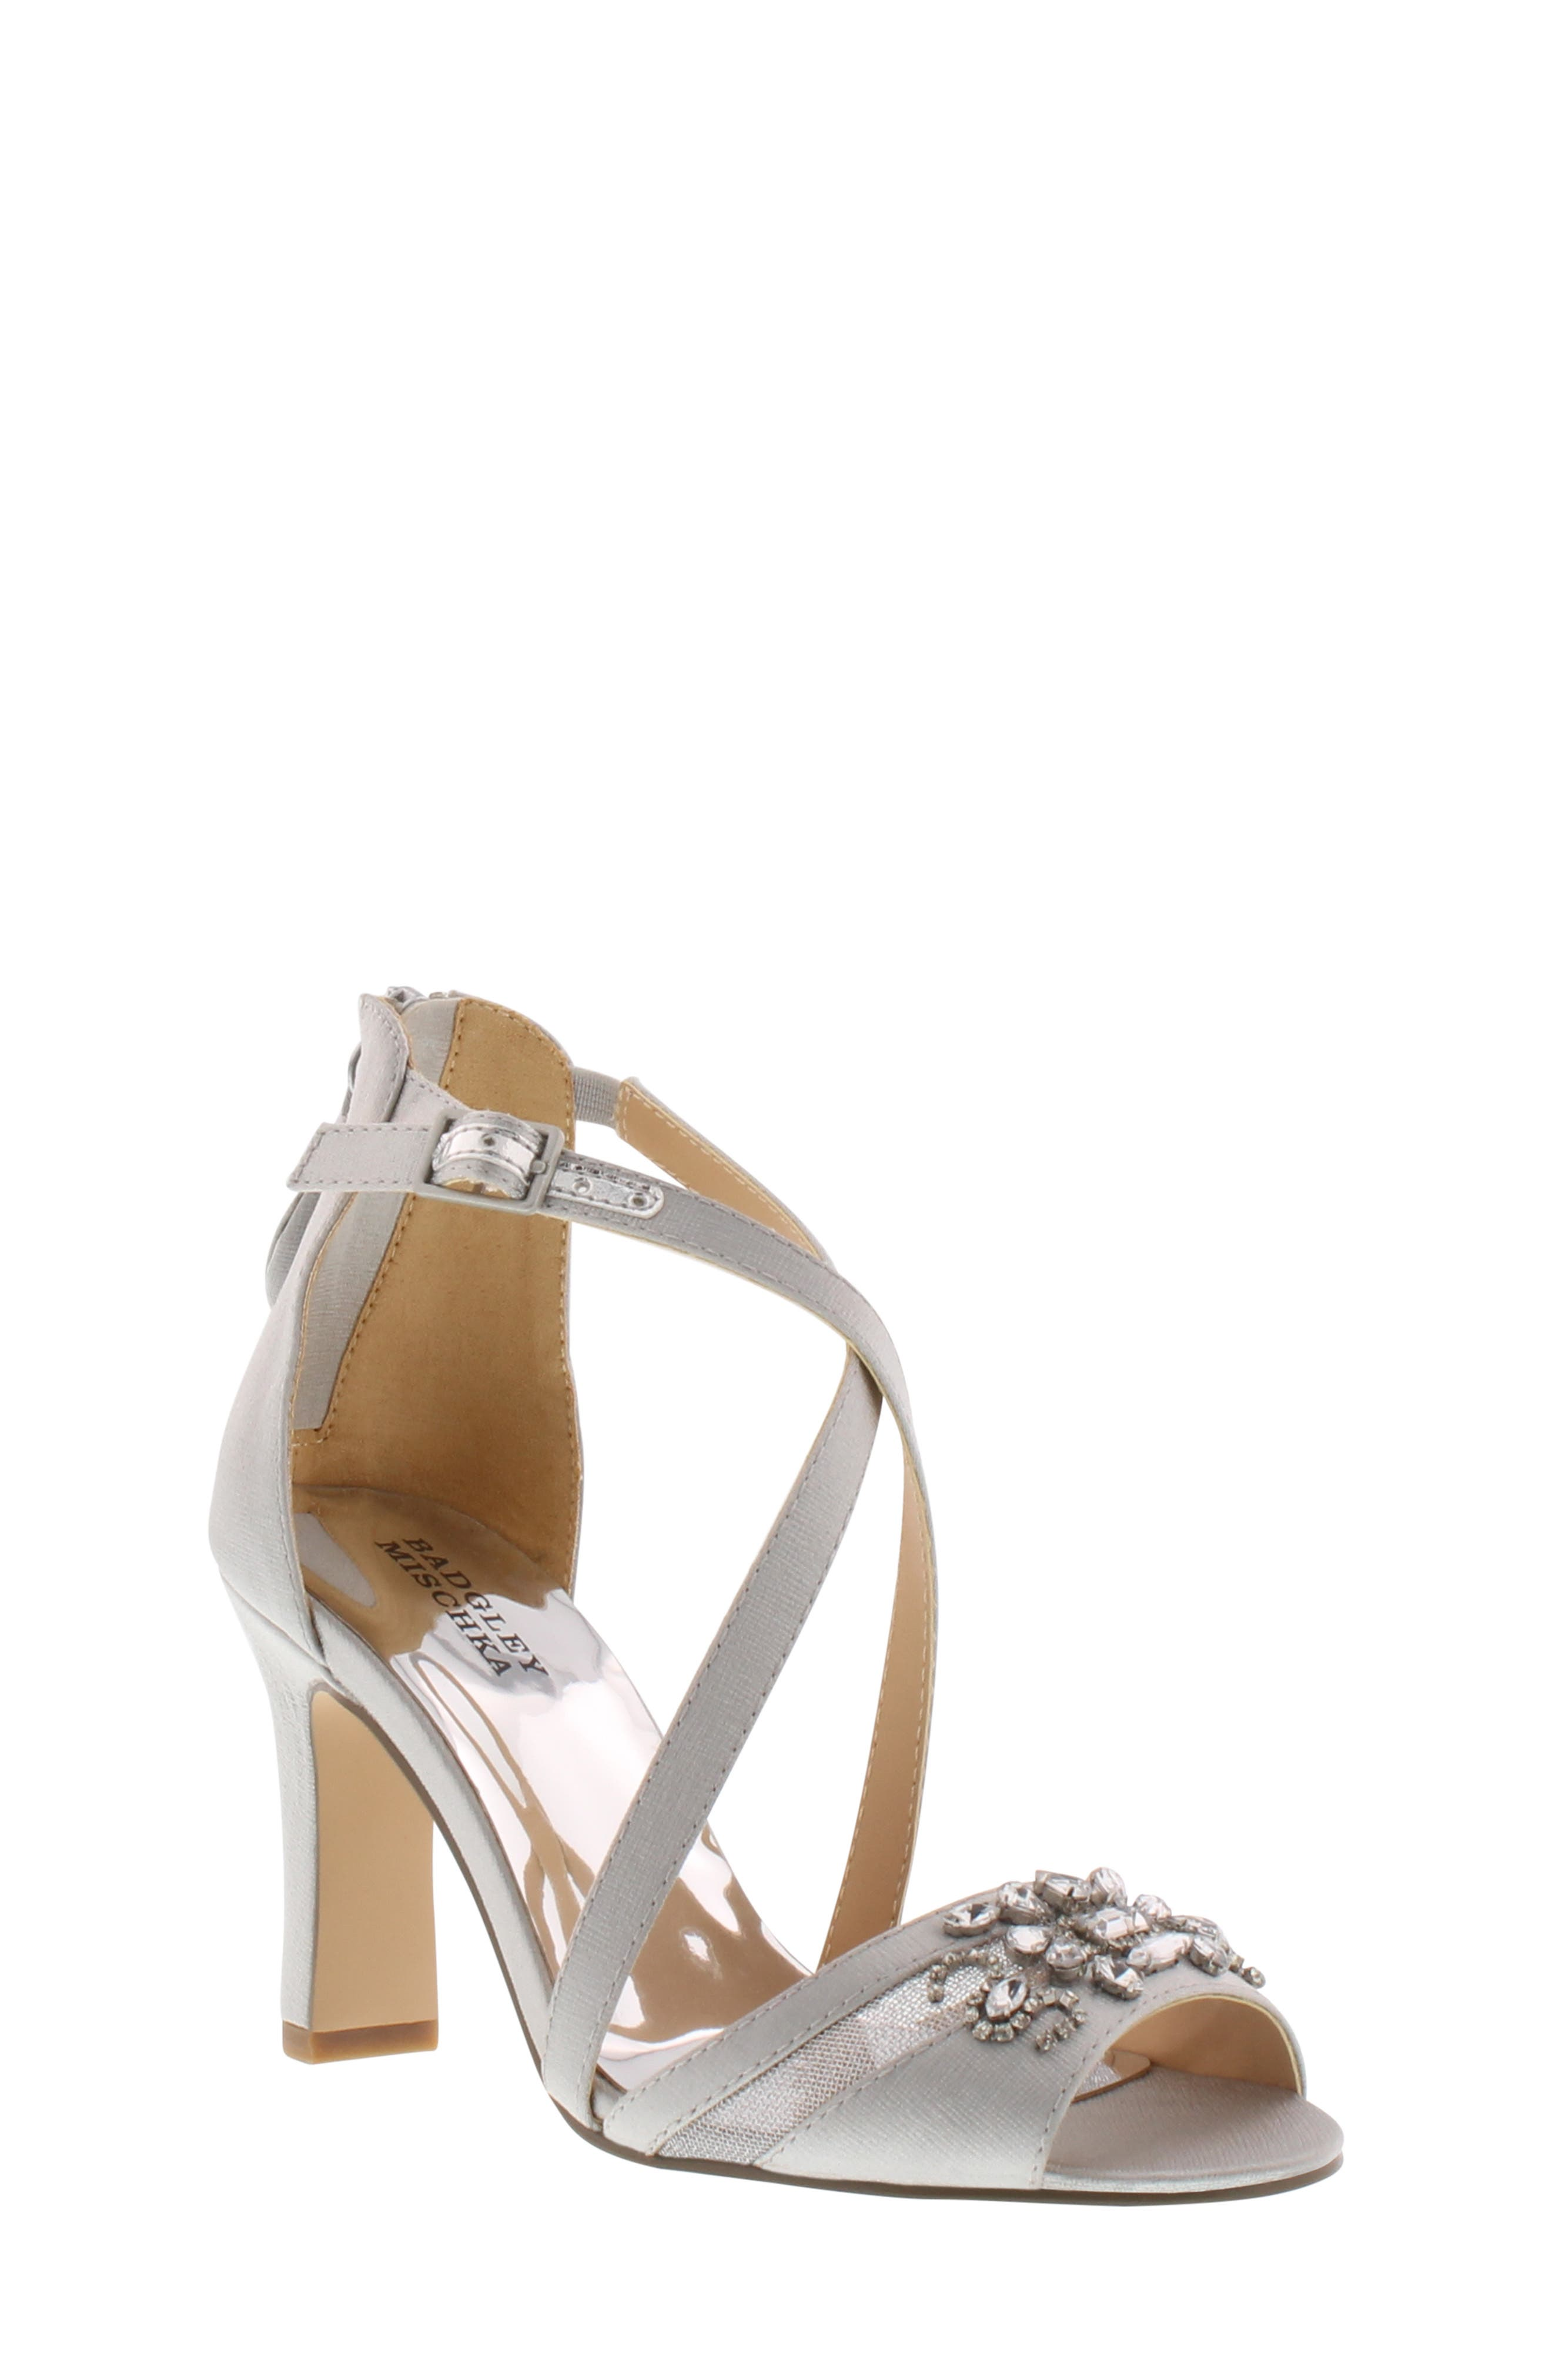 3a6f7f50dee Girls' Badgley Mischka Collection Shoes   Nordstrom